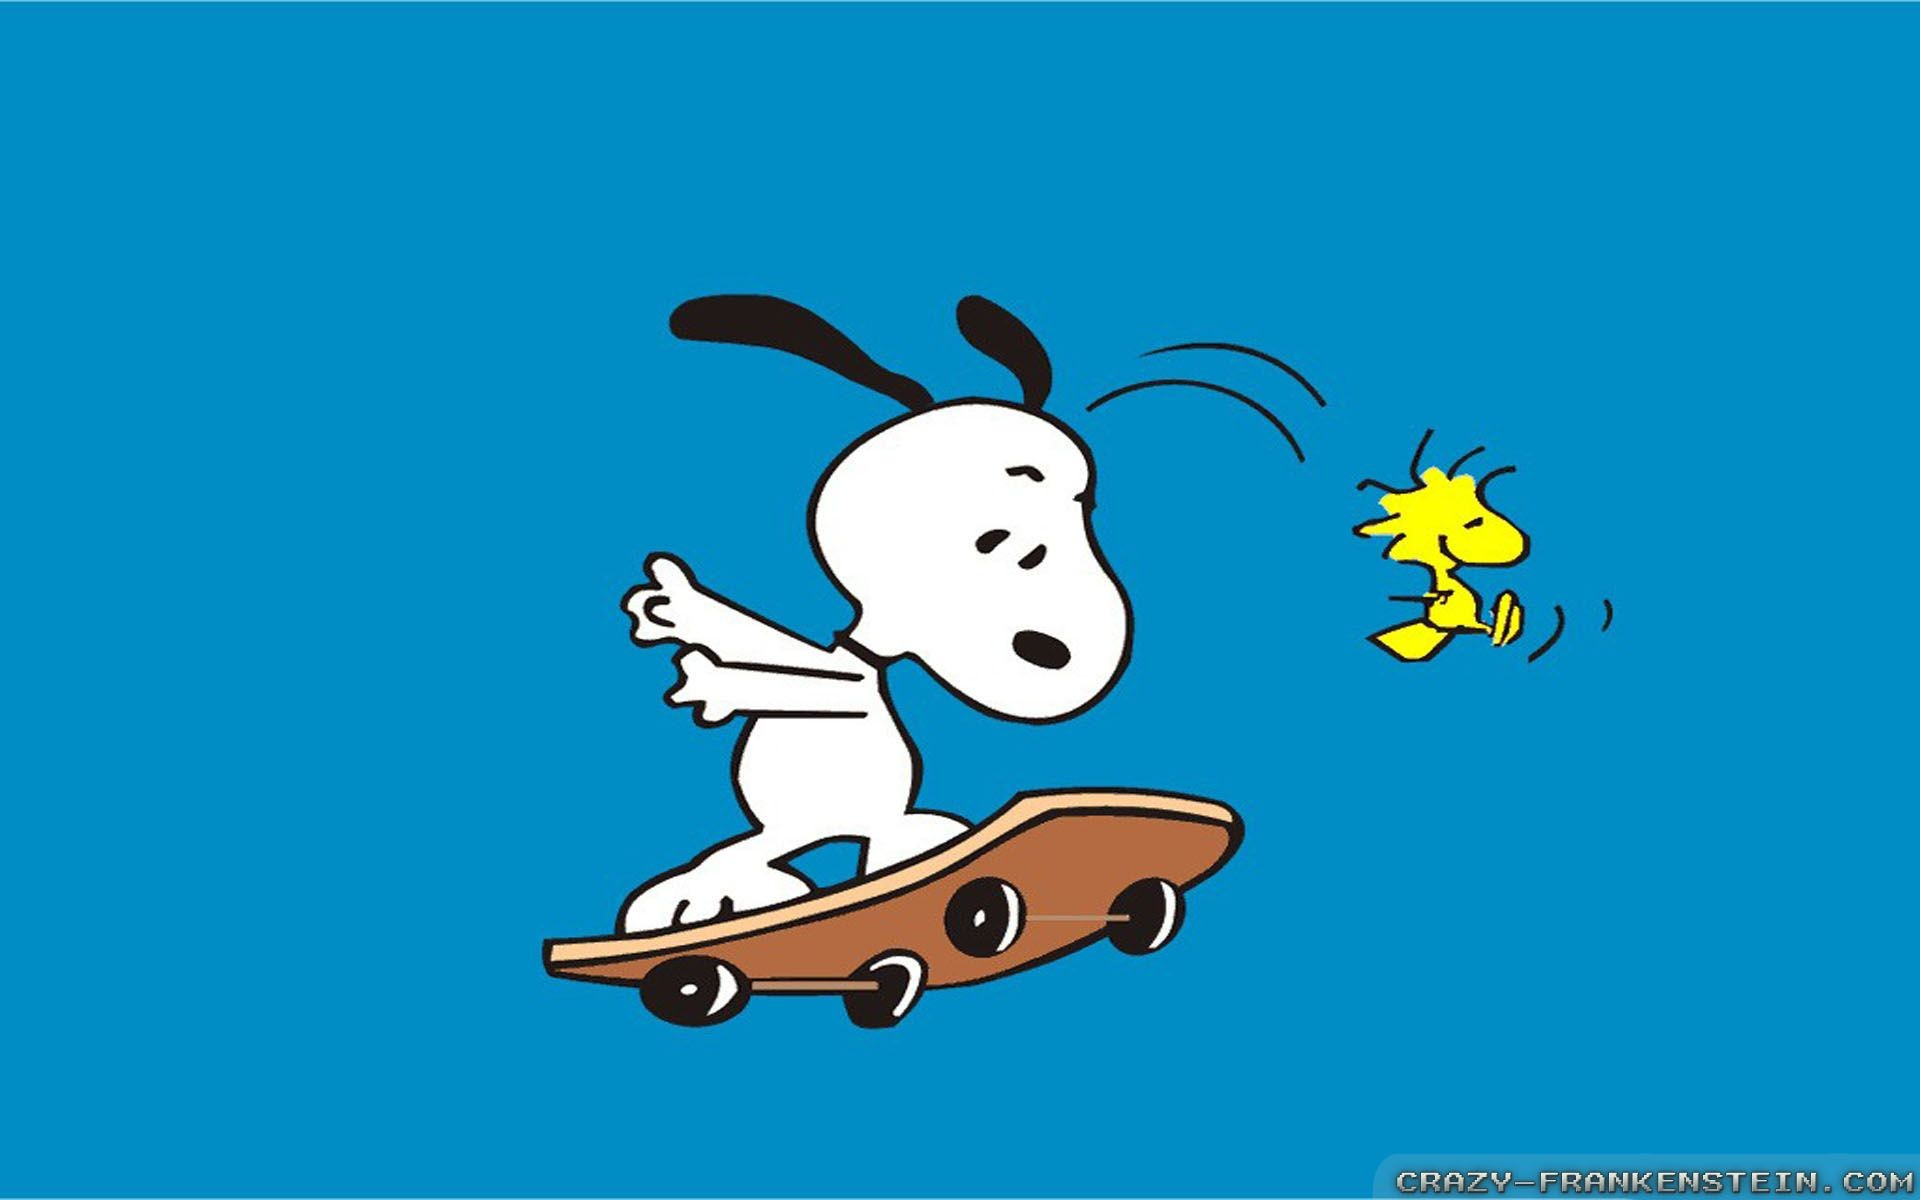 1920x1200 Snoopy HD Image Wallpaper, Size: